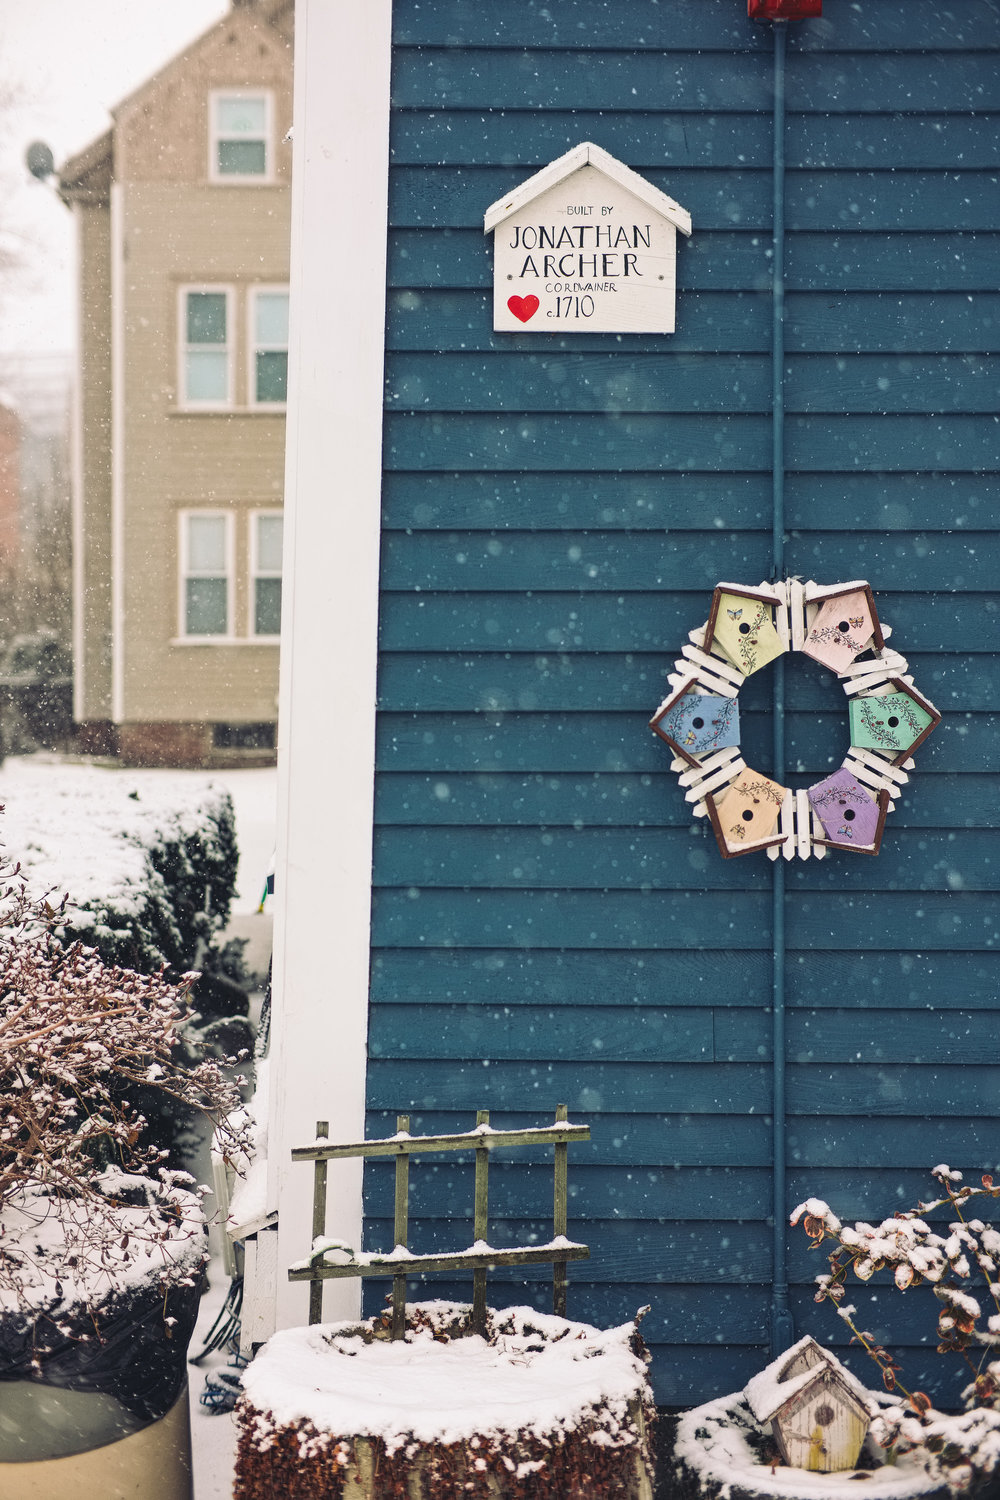 House Plaque, Salem, MA - Feb. 2018 © Joseph Ferraro